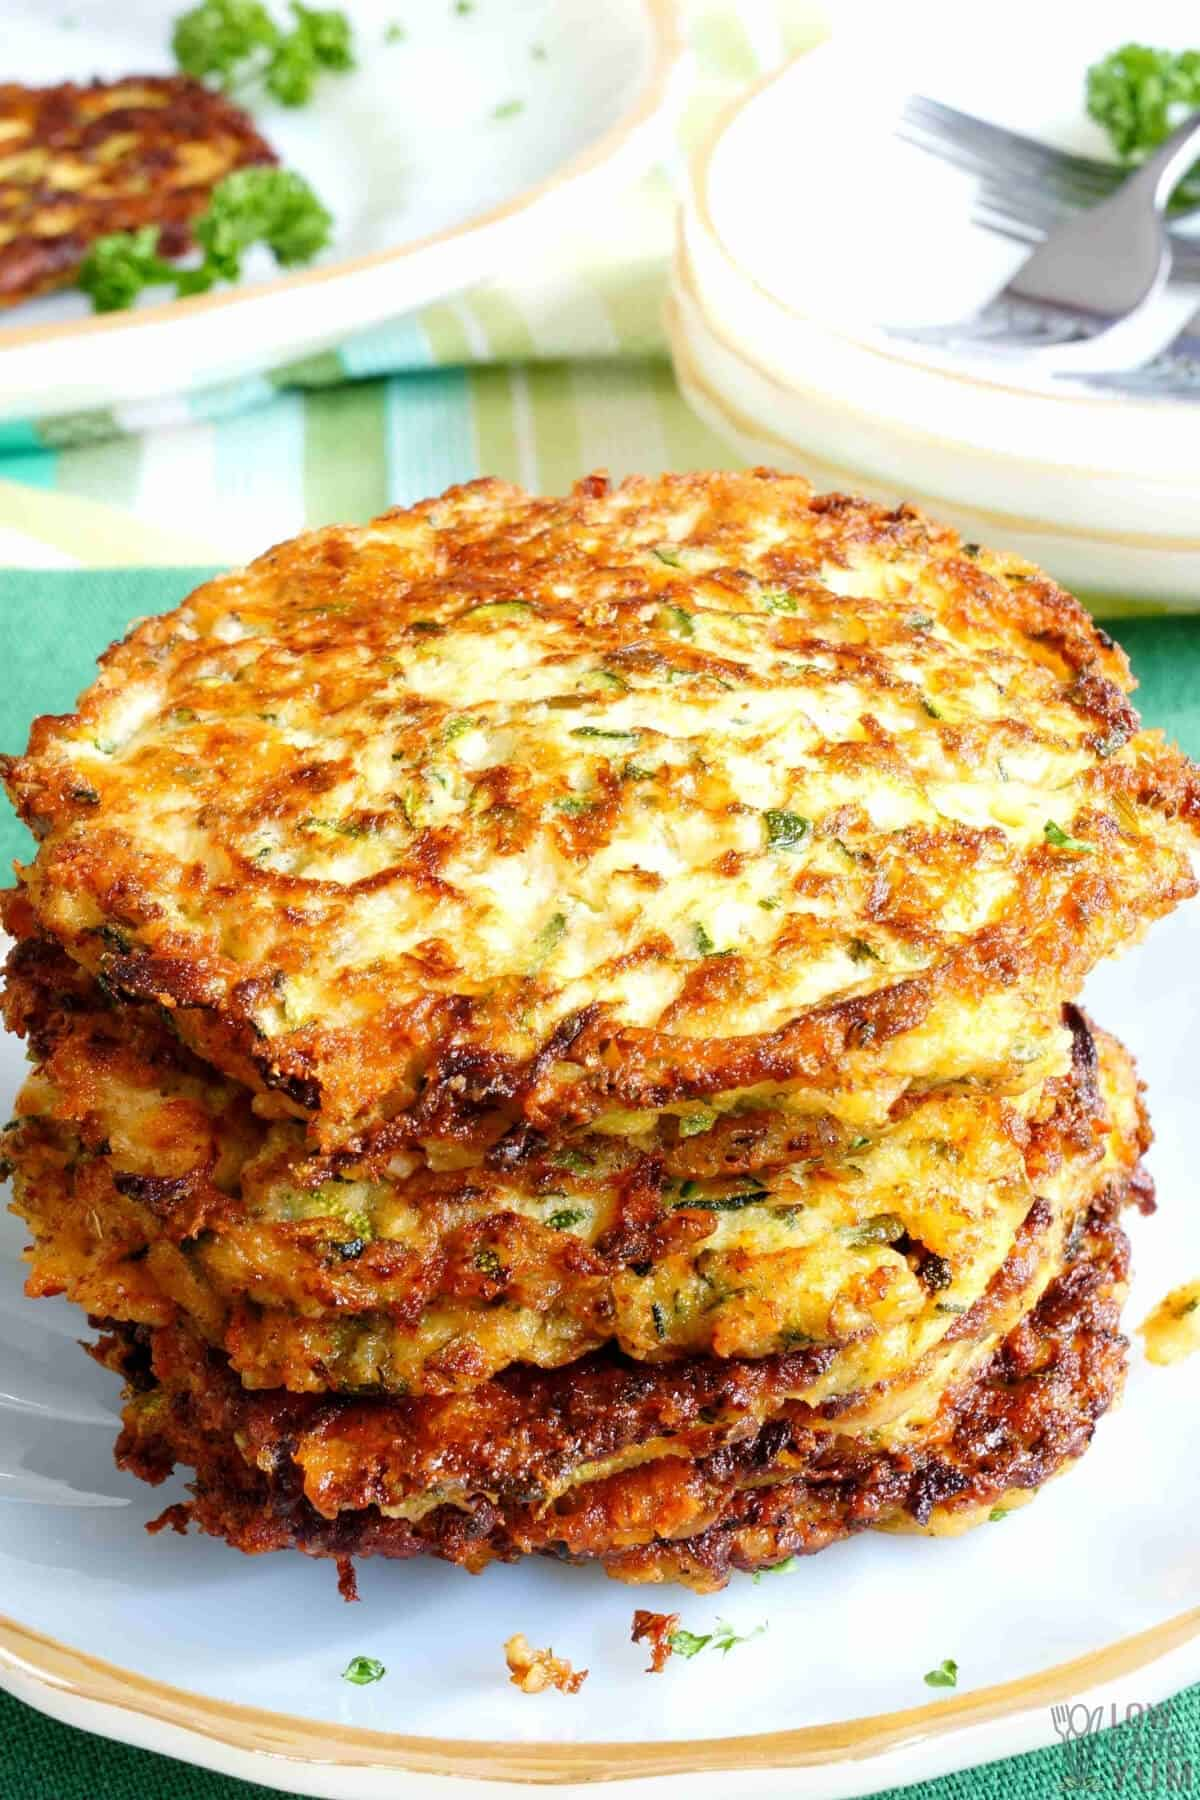 stack of gluten free zucchini fritters from keto recipe